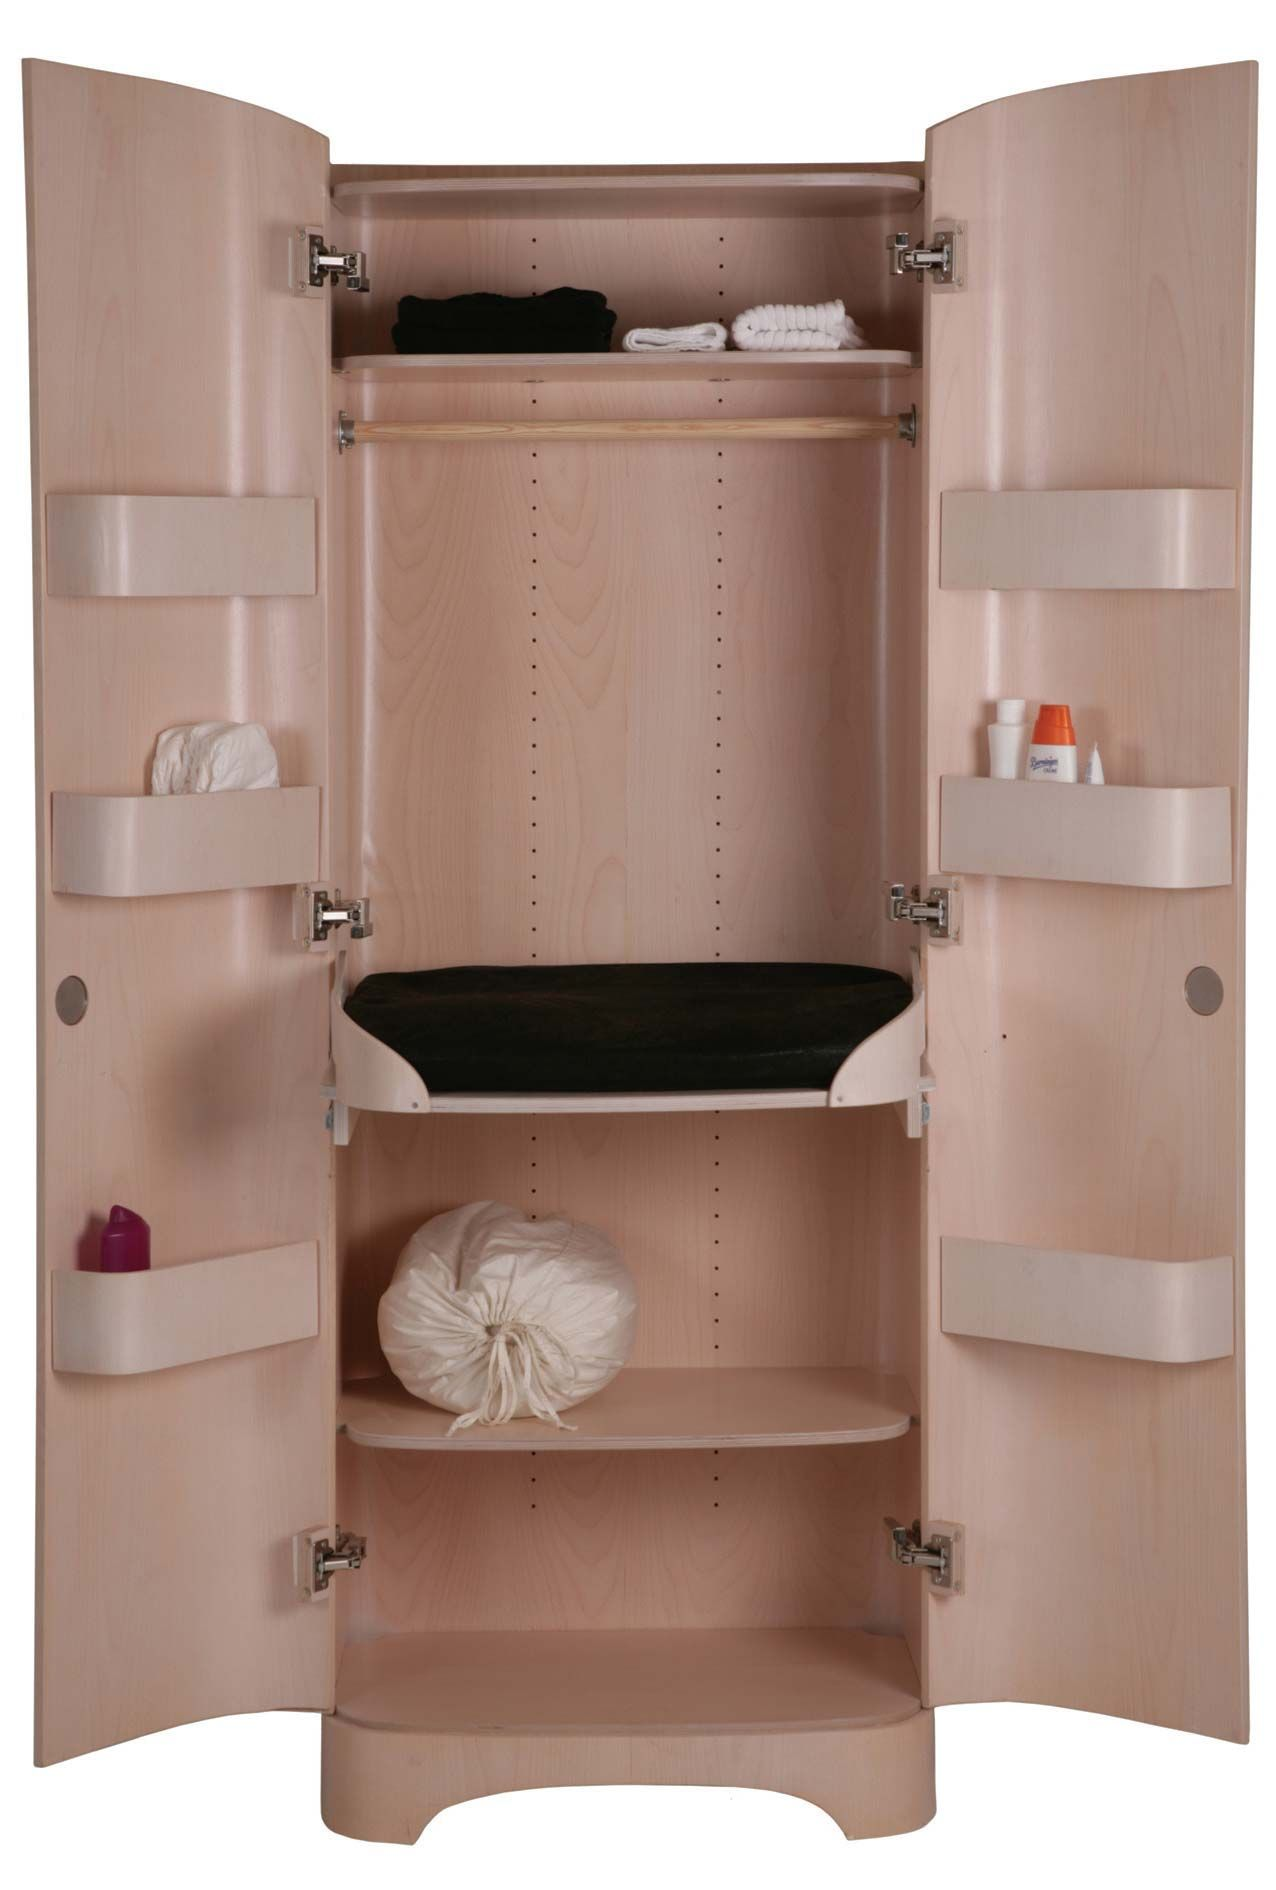 Baby : Baby Changing Station Cupboard   Preparing Healthy Public Diaper  Changing Station Safety For Baby Commercial Diaper Changing Stations, ...